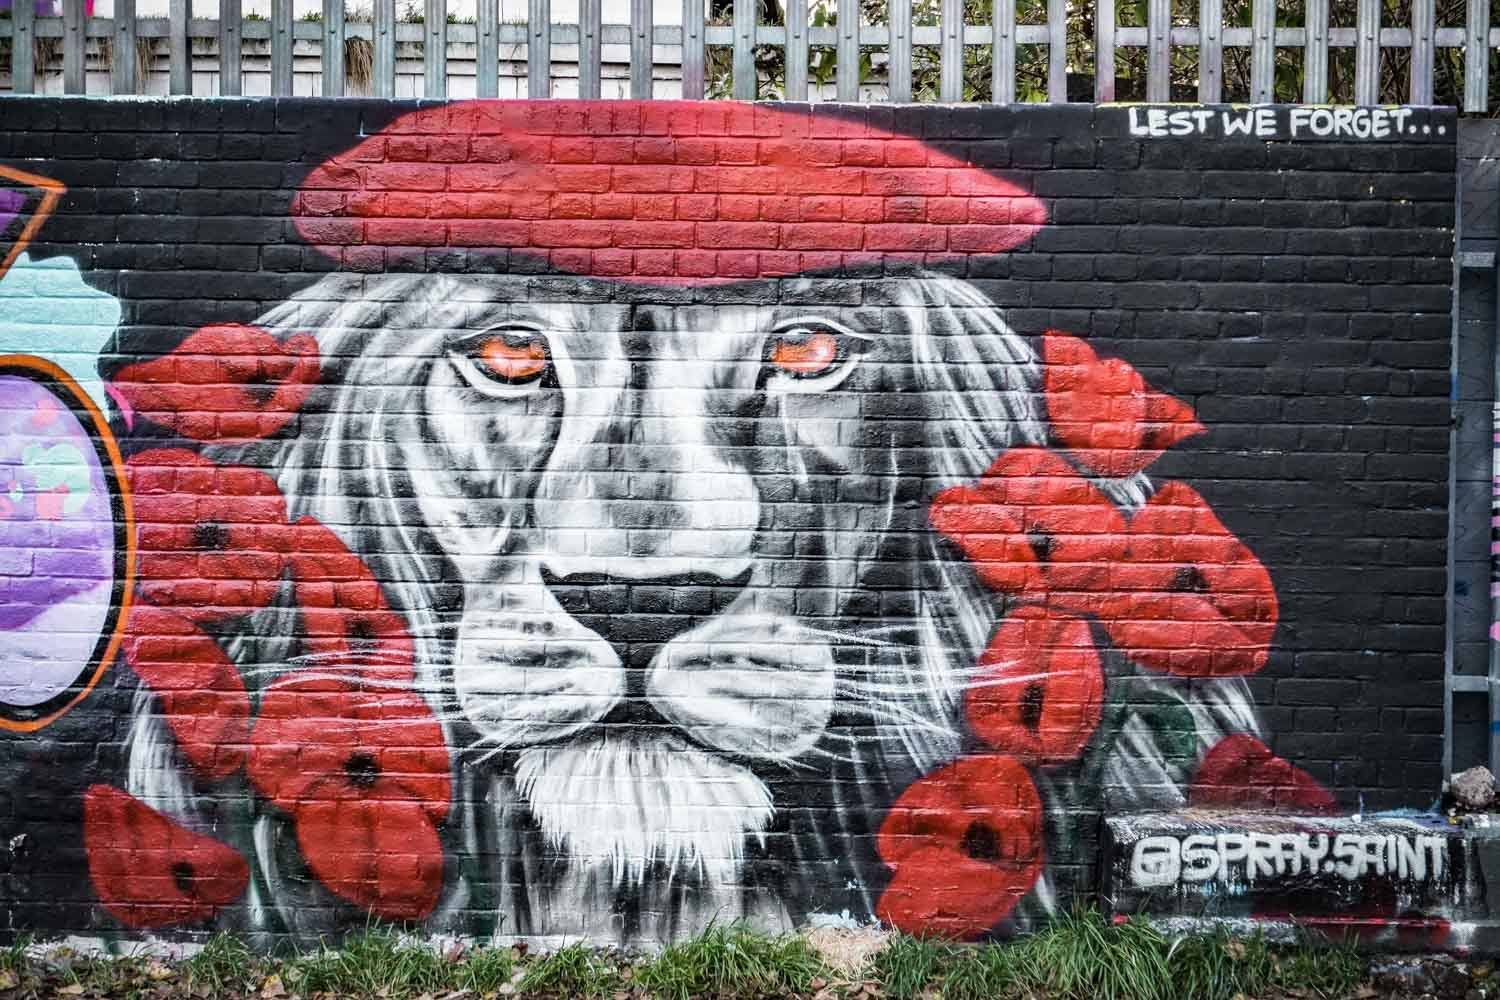 Lest we forget Street art London